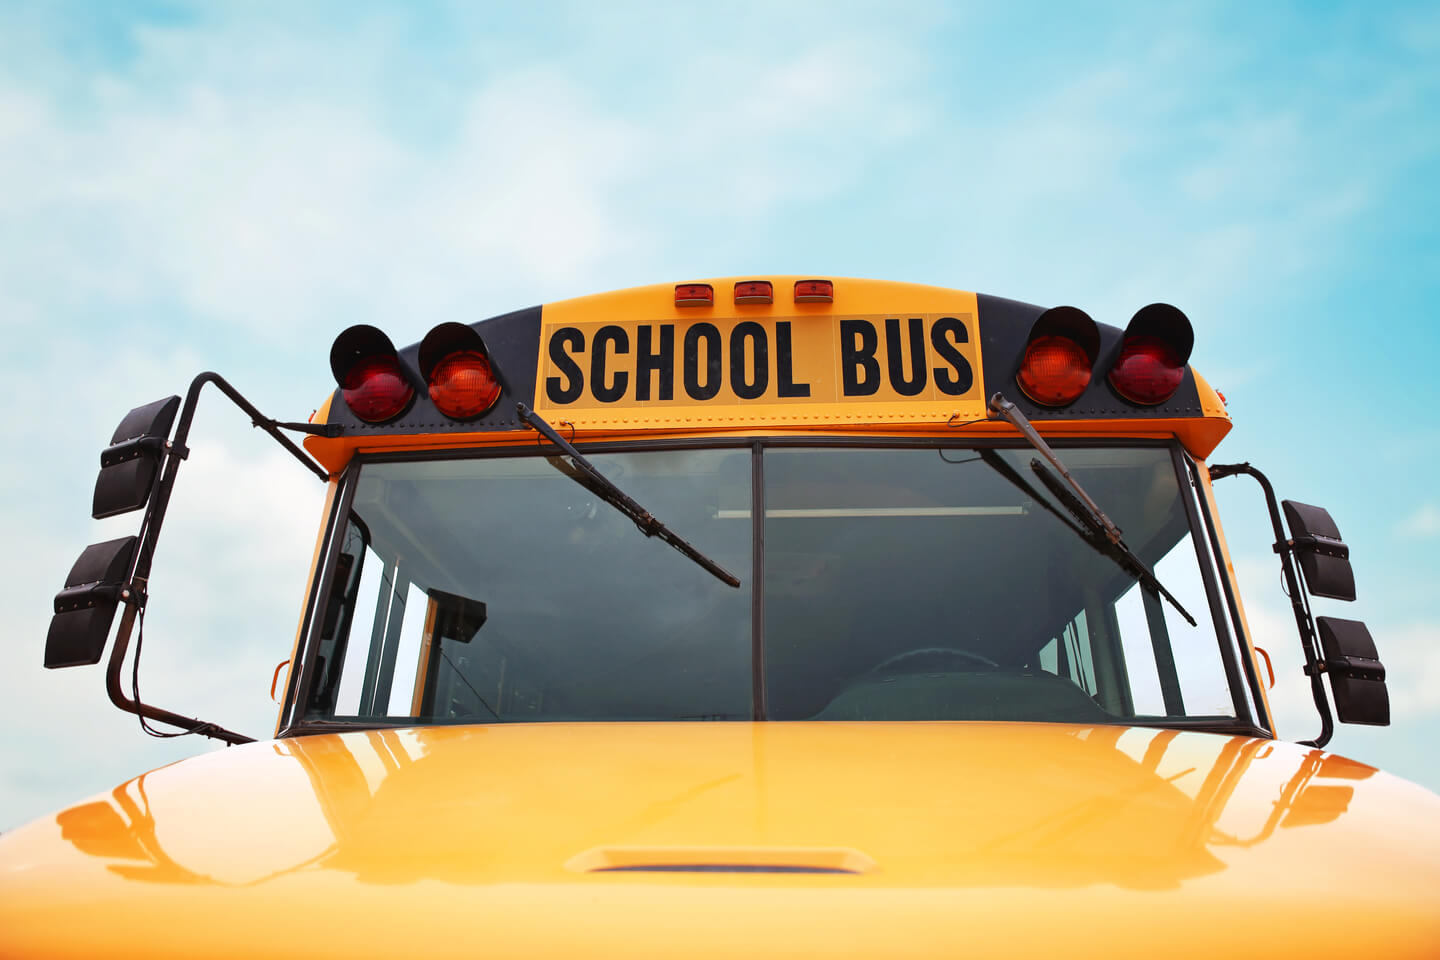 Why are School Buses Yellow? And Other Fun Facts About Buses